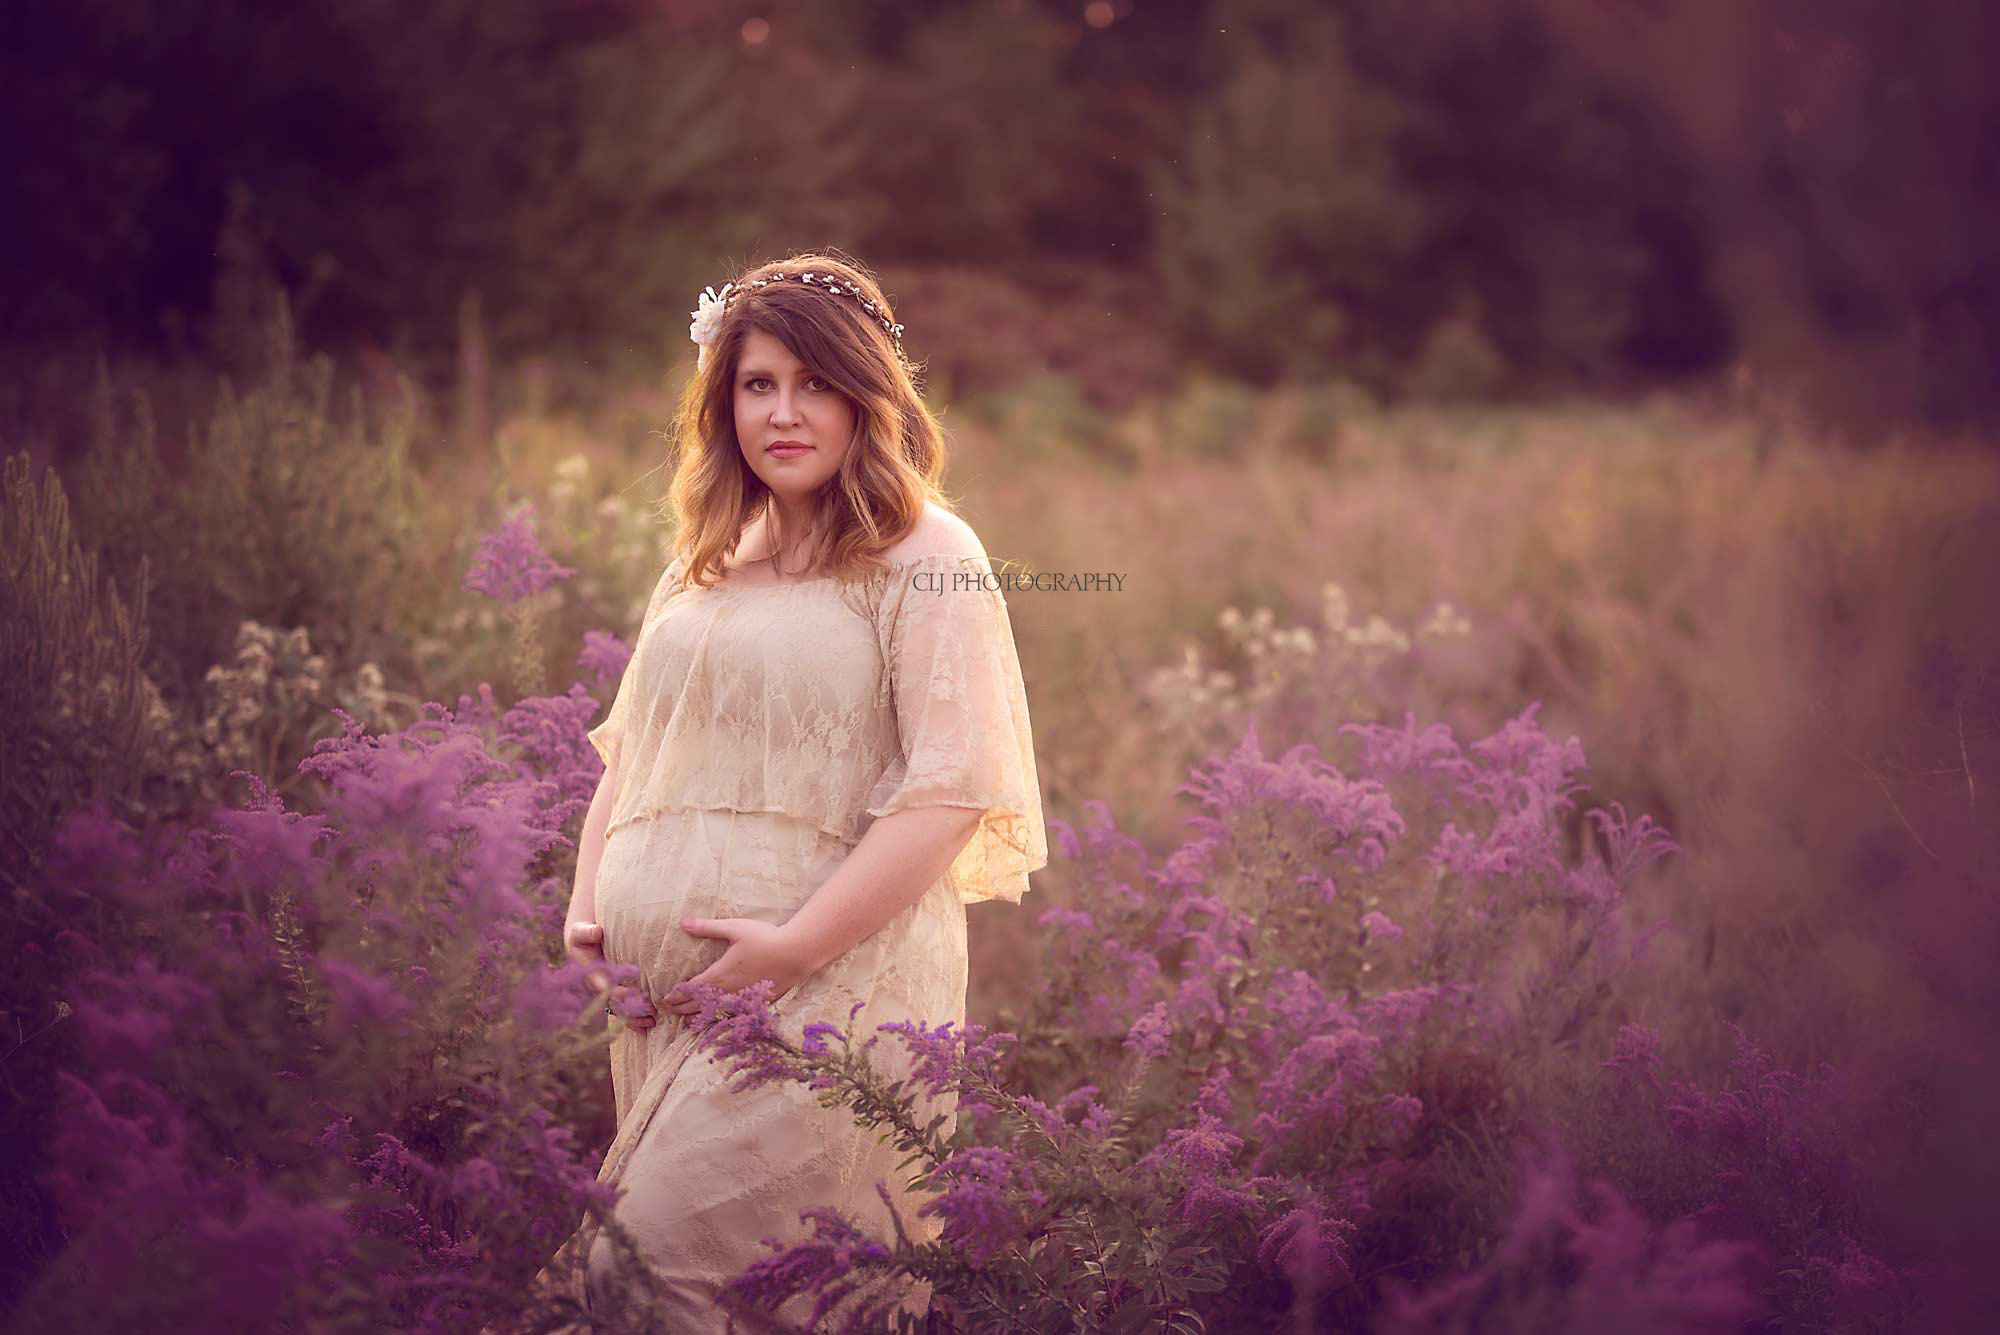 gowns Maternity Sessions - Frisco Photographer and North Dallas Areas